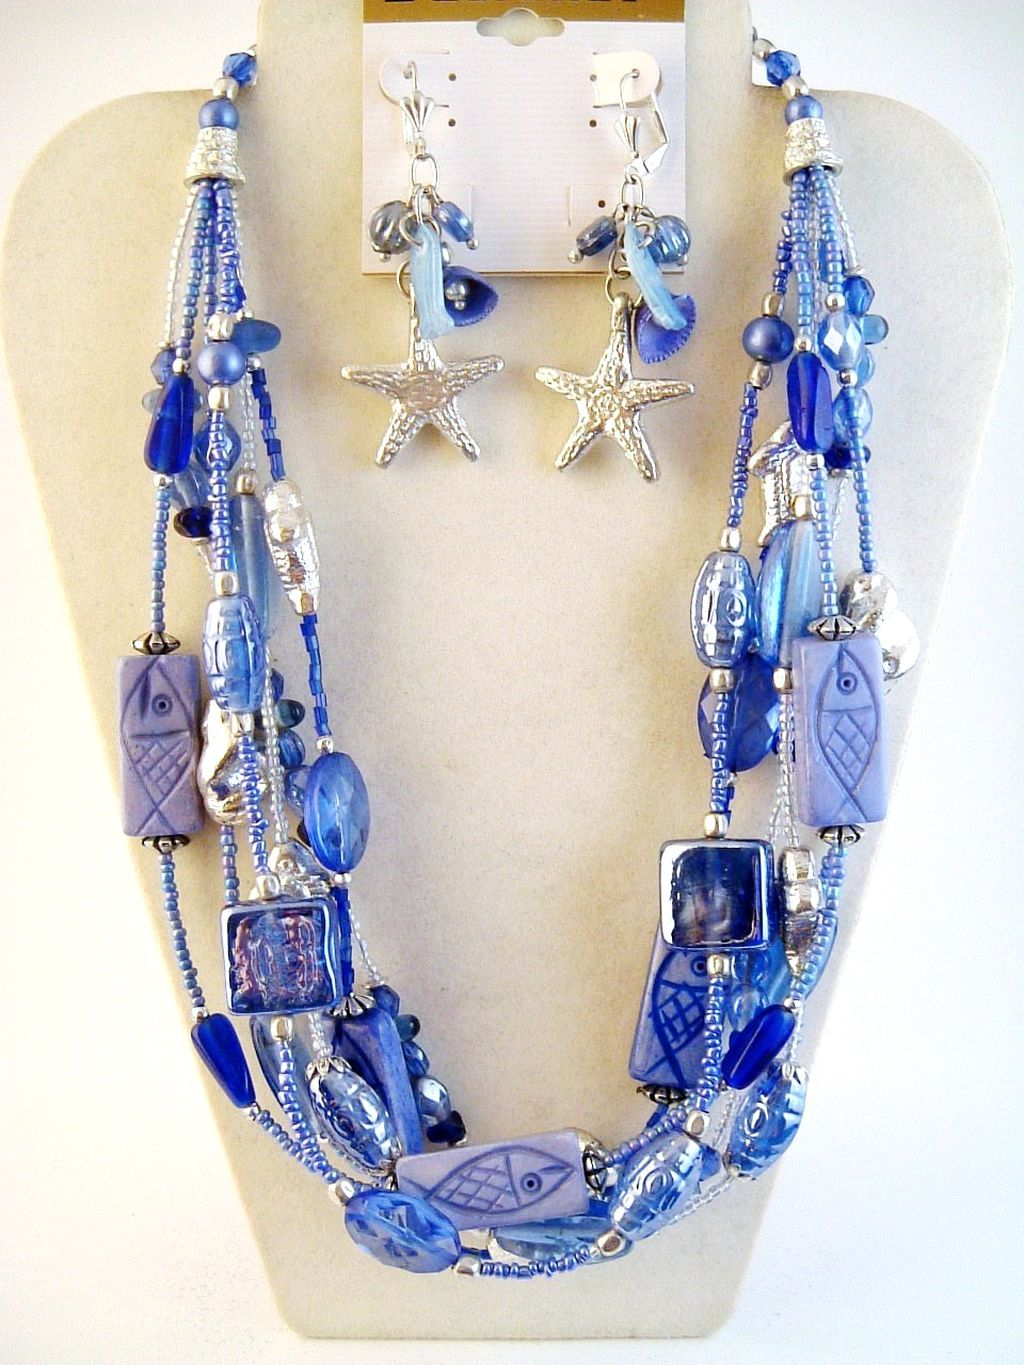 Blue Fish Sea Star Starfish Glass Beads Multi Layer